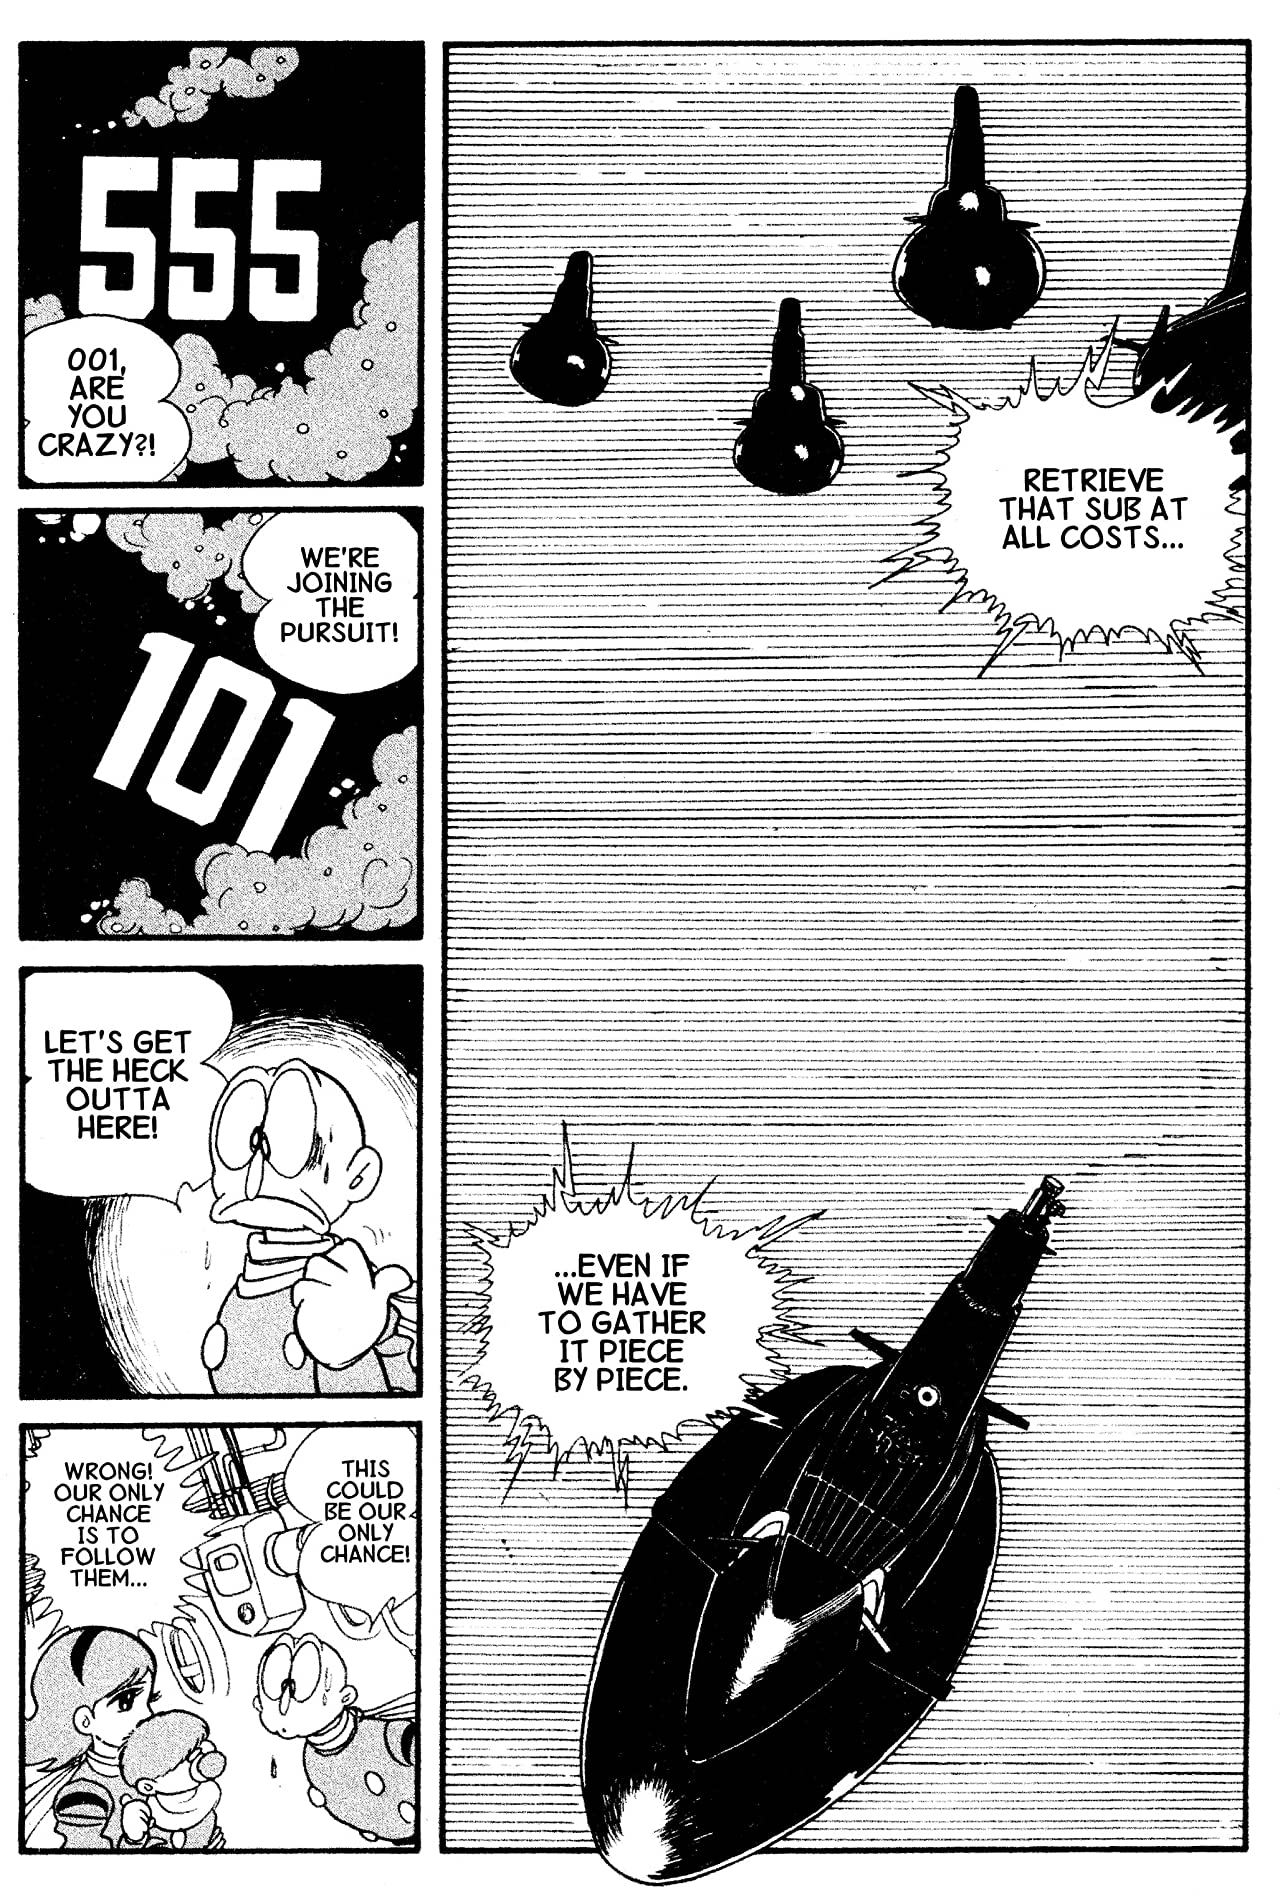 Cyborg 009 Vol. 2: Preview